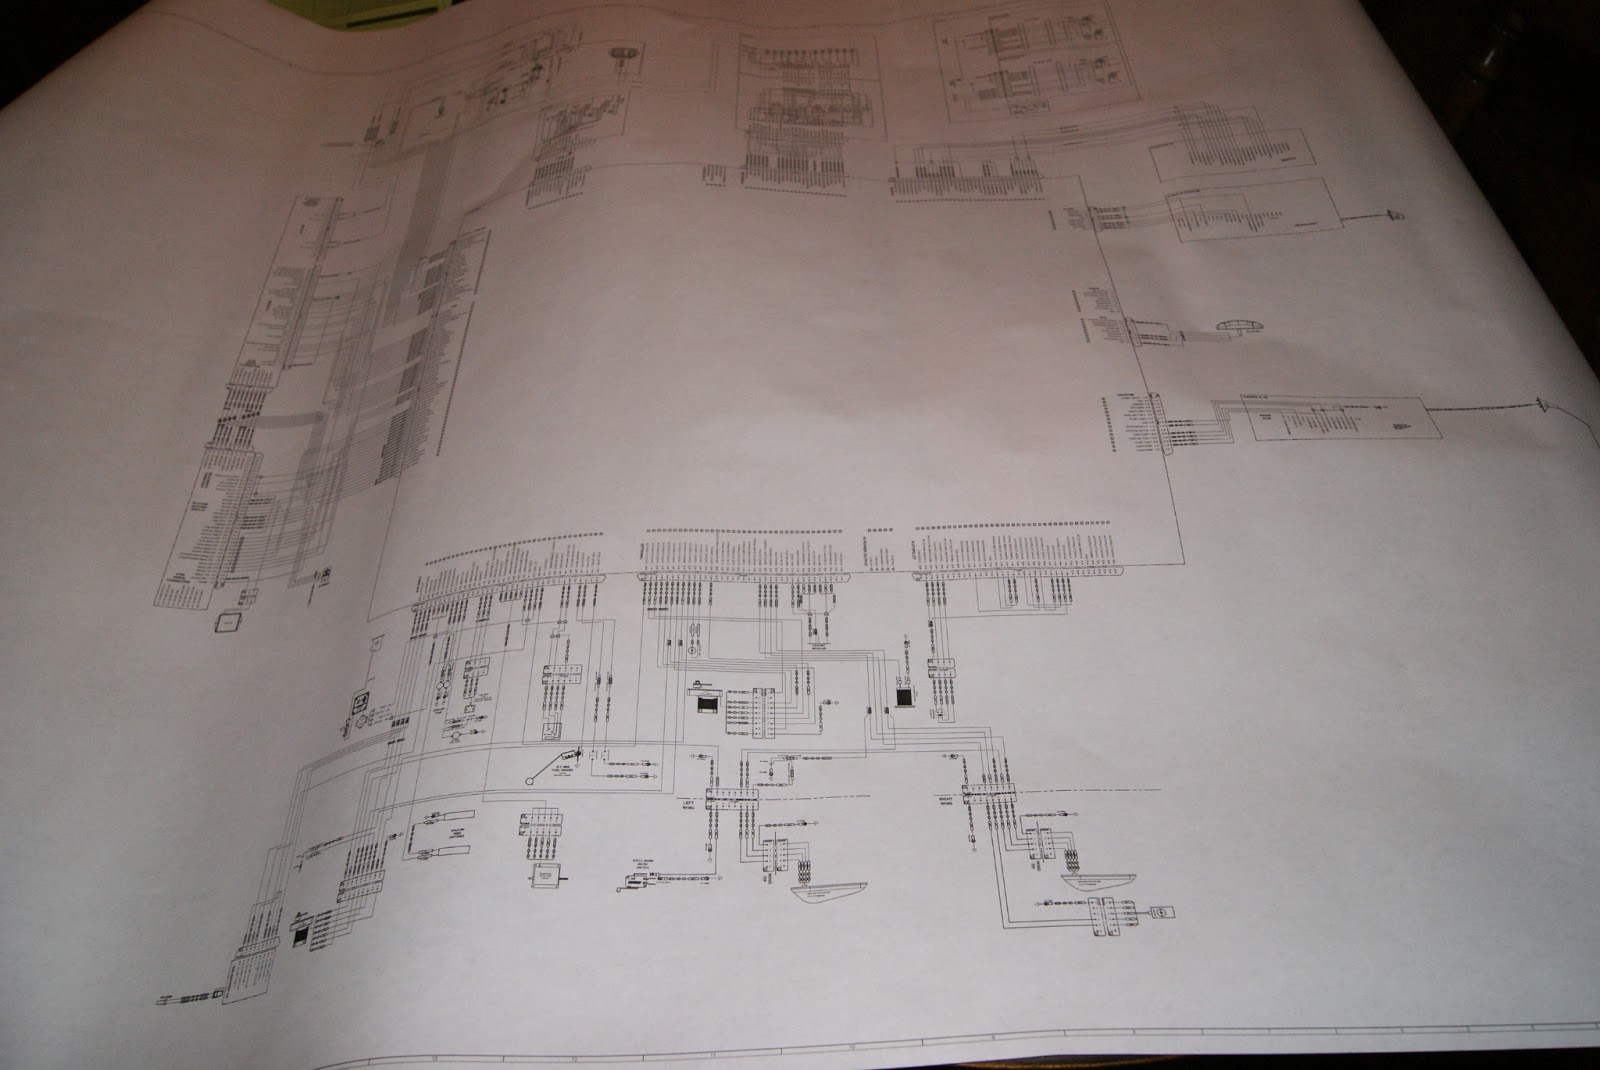 Dog Aviation Johns Rv 12 Blog January 2013 Schematic Diagram Honestly The Would Need To Be About Size Of Side A Cargo Van As Easily Read